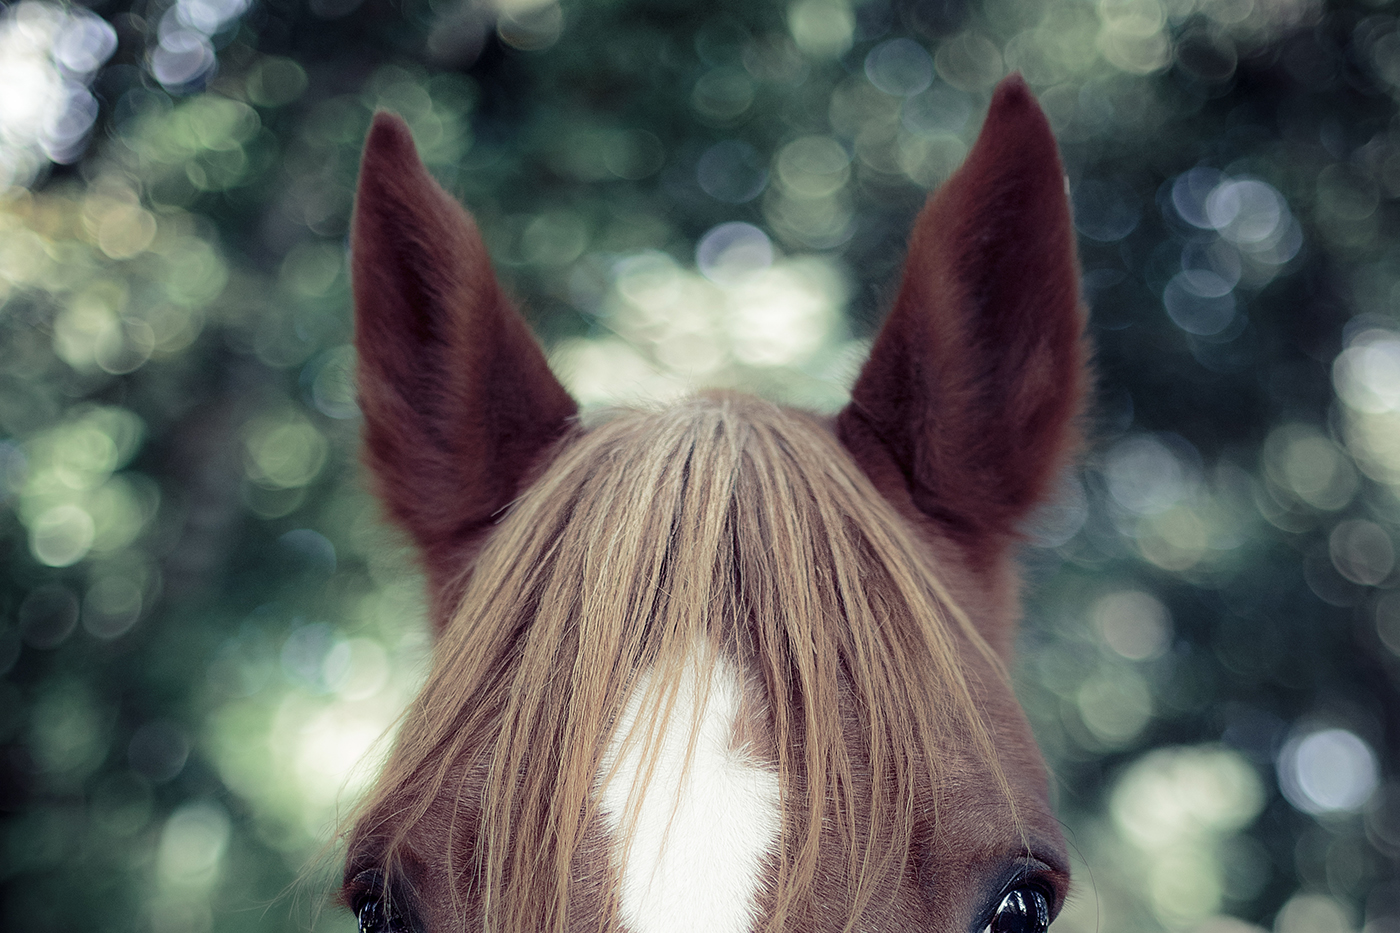 photographe-animalier-cheval-equestre-poitiers-guillaume-heraud-31